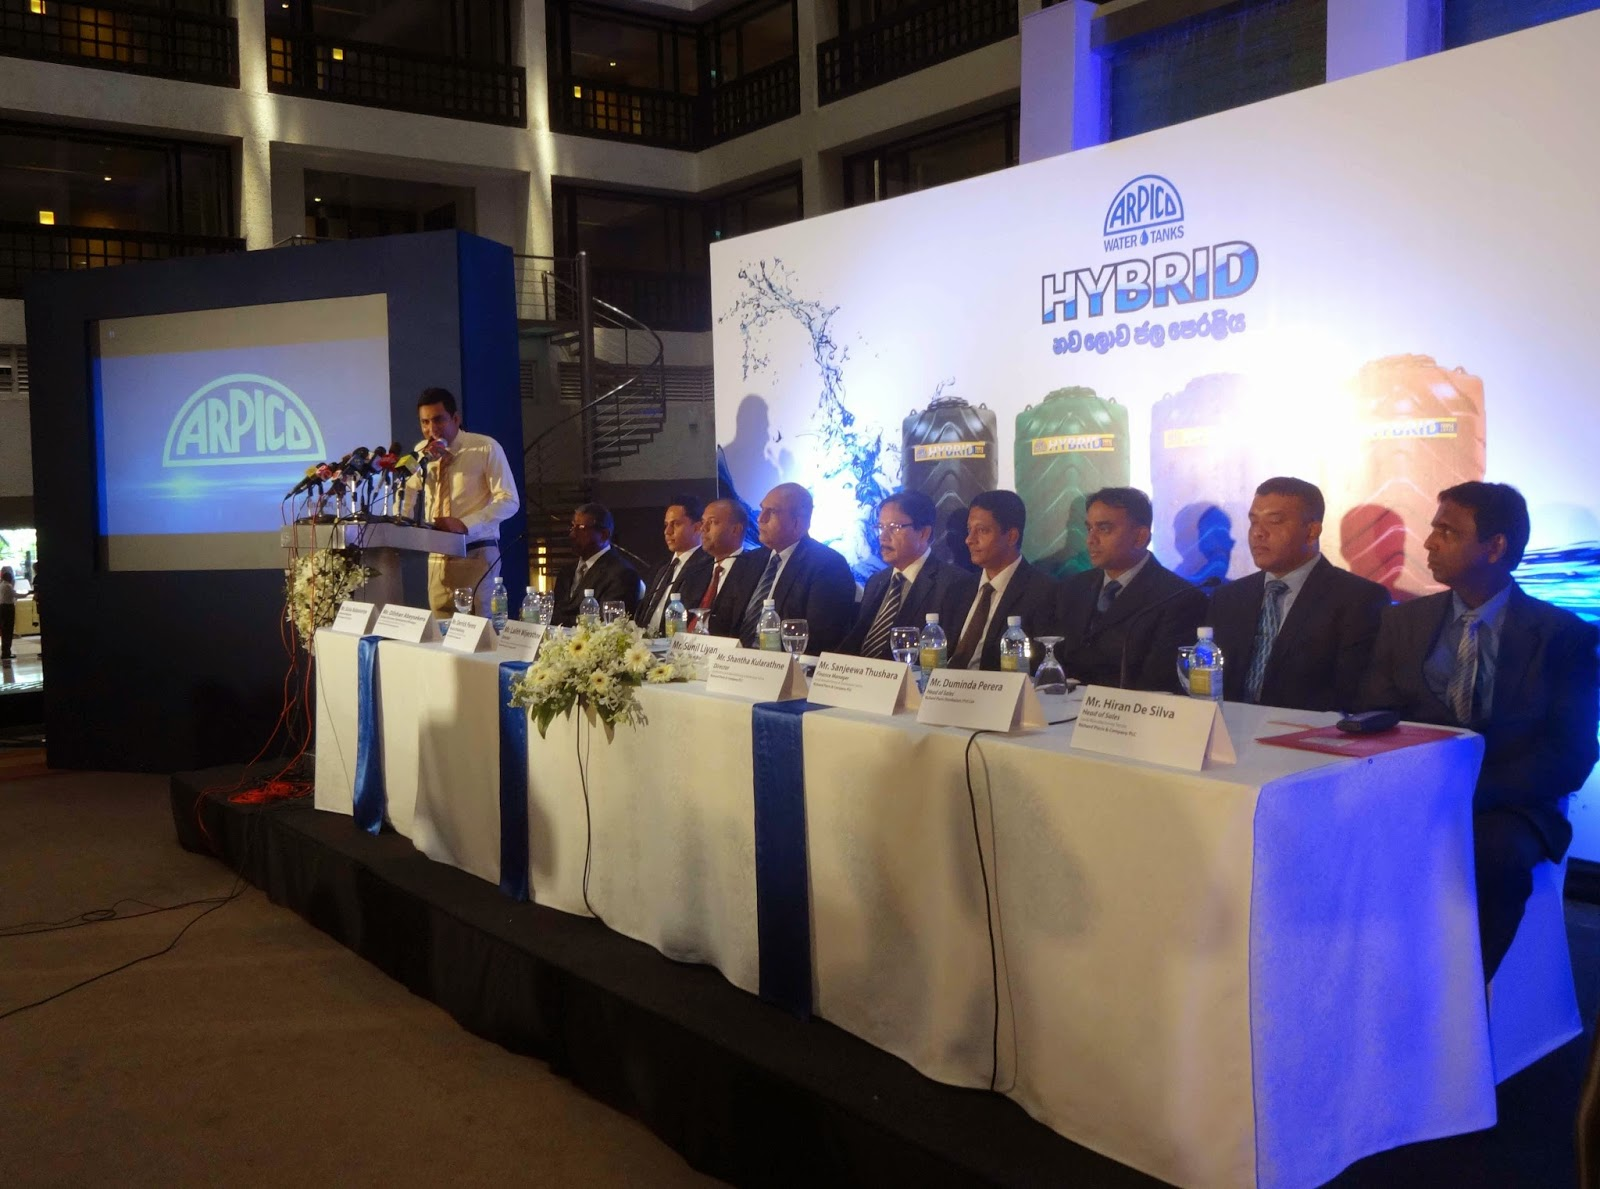 Hybrid water tanks launching ceremony-Head Tables